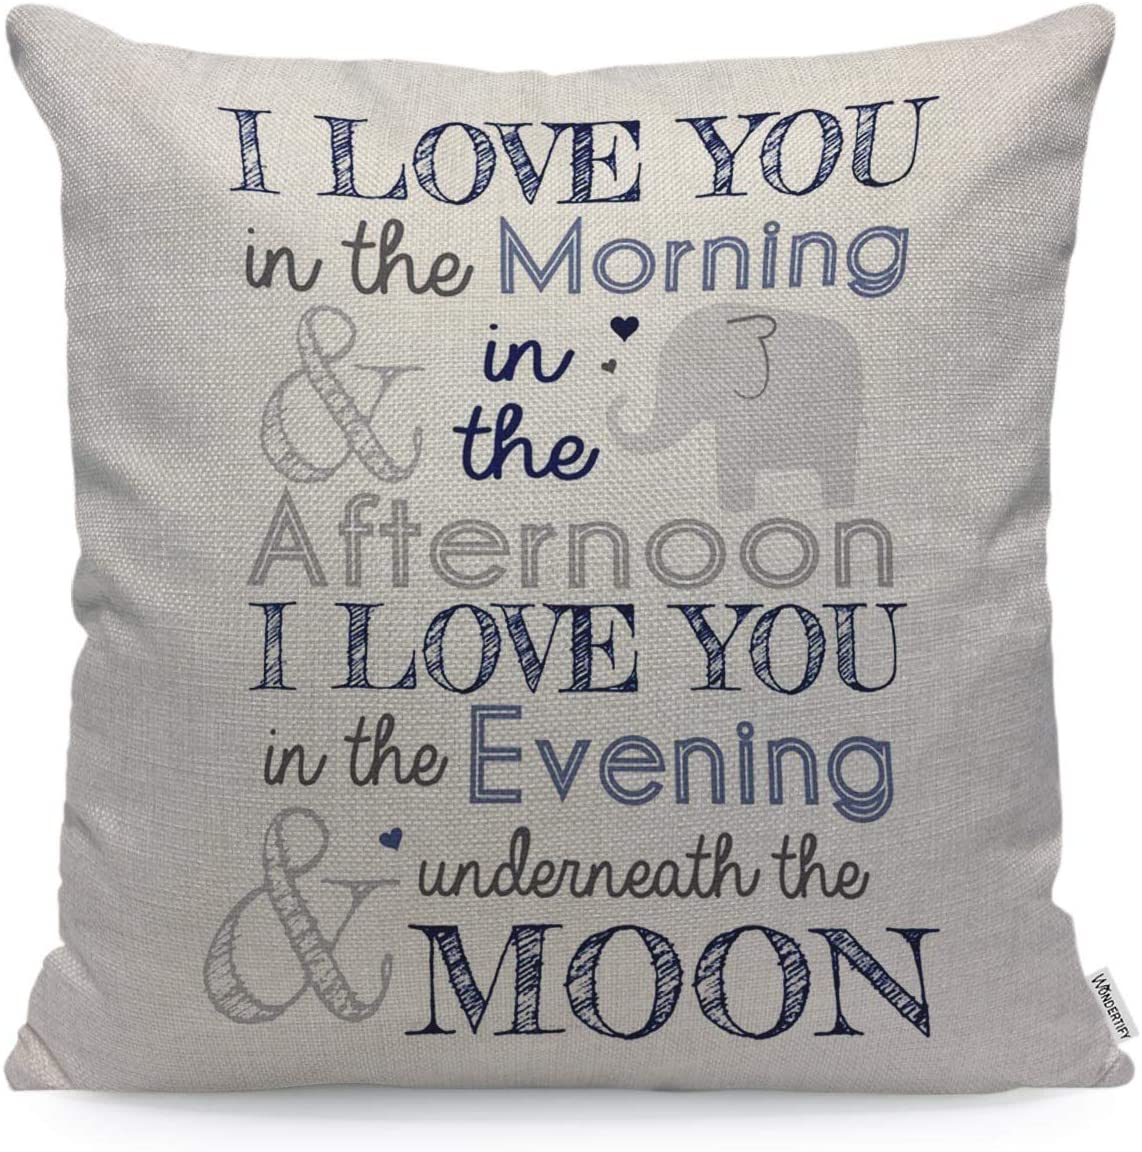 WONDERTIFY Pillow Cover I Love You in The Morning Afternoon Evening with Elephant Letter - Soft Linen Pillow Case for Decorative Bedroom/Livingroom/Sofa/Car - Cushion Covers 18x18 Inch